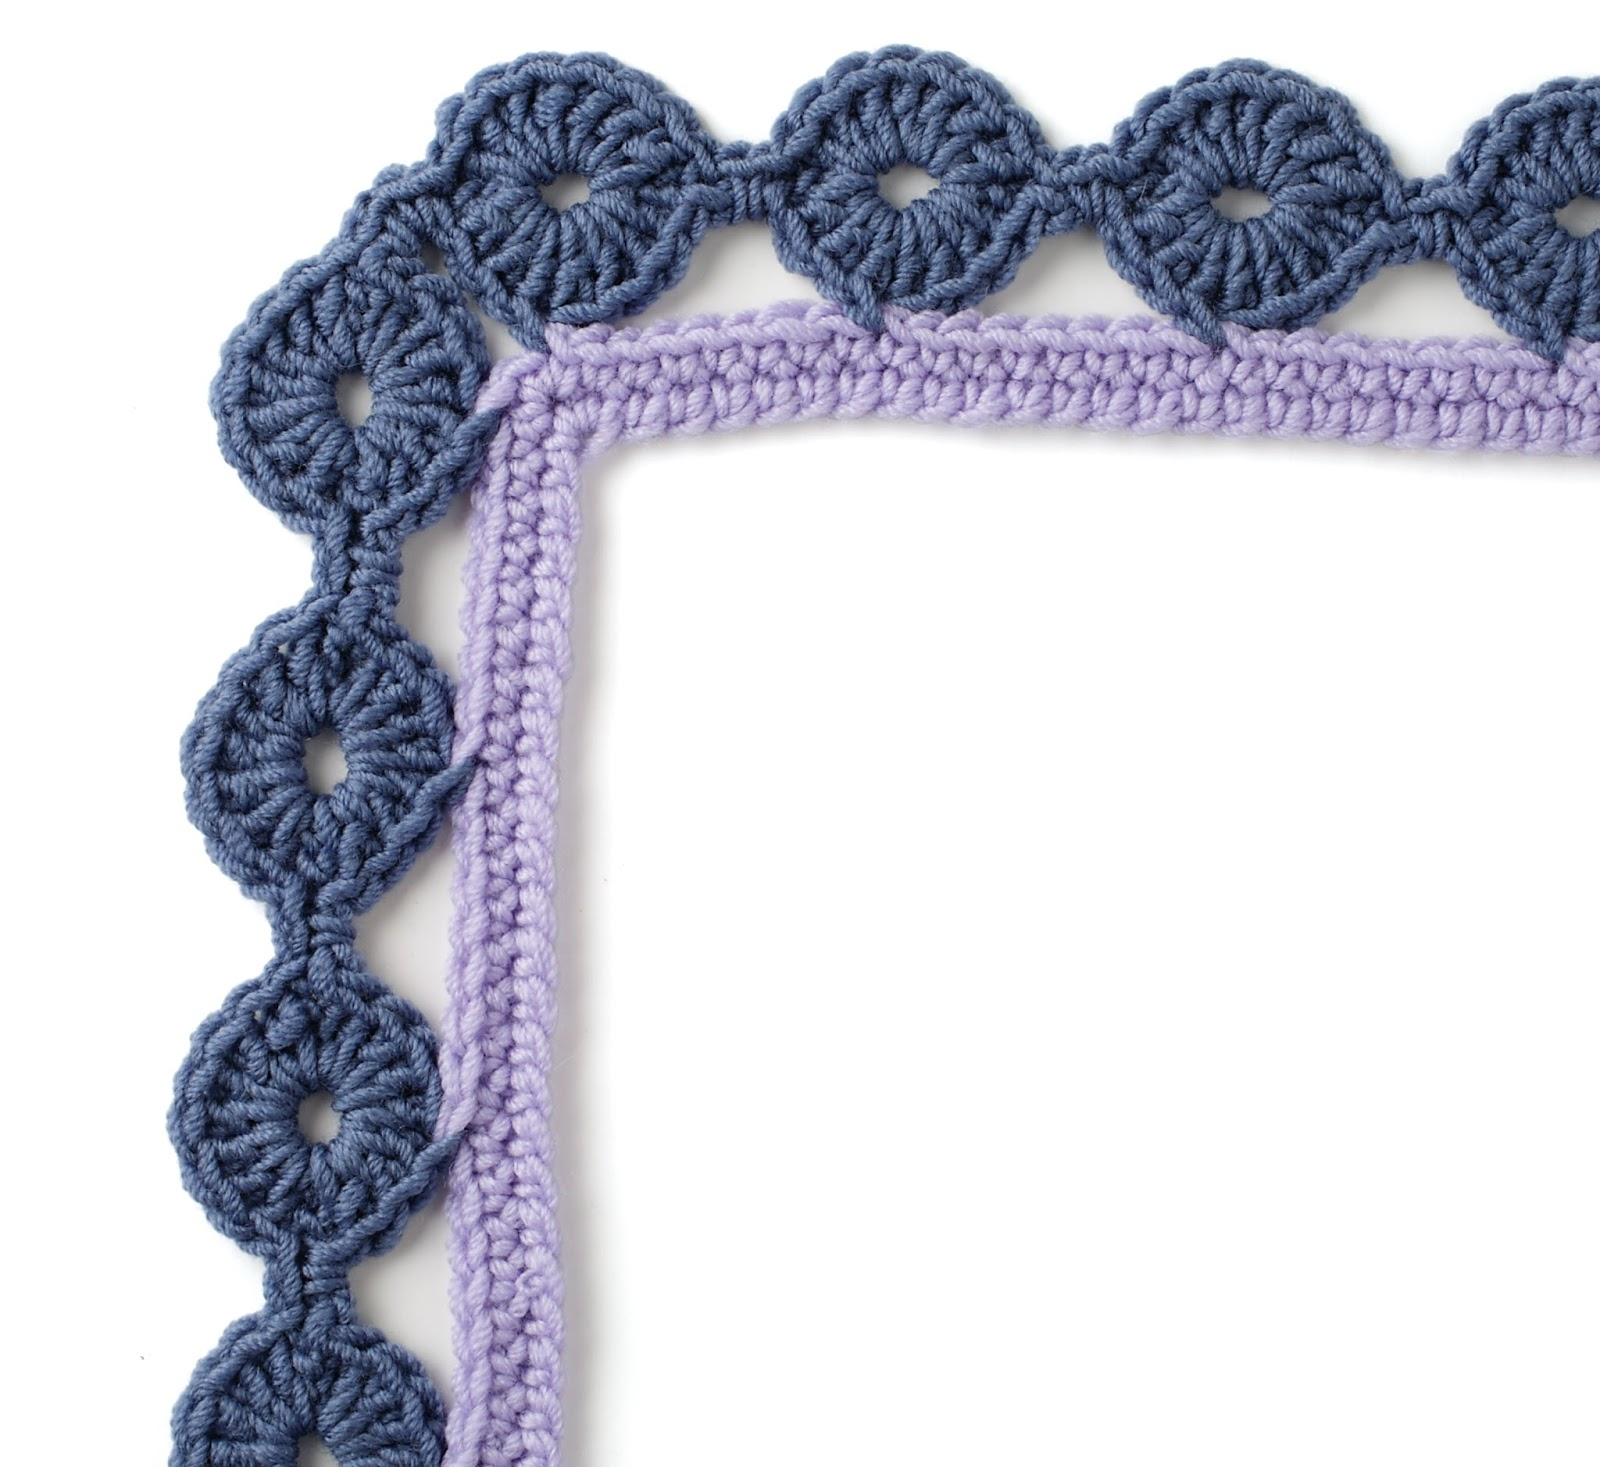 Felted Button - Colorful Crochet Patterns: Free Border Pattern from ...